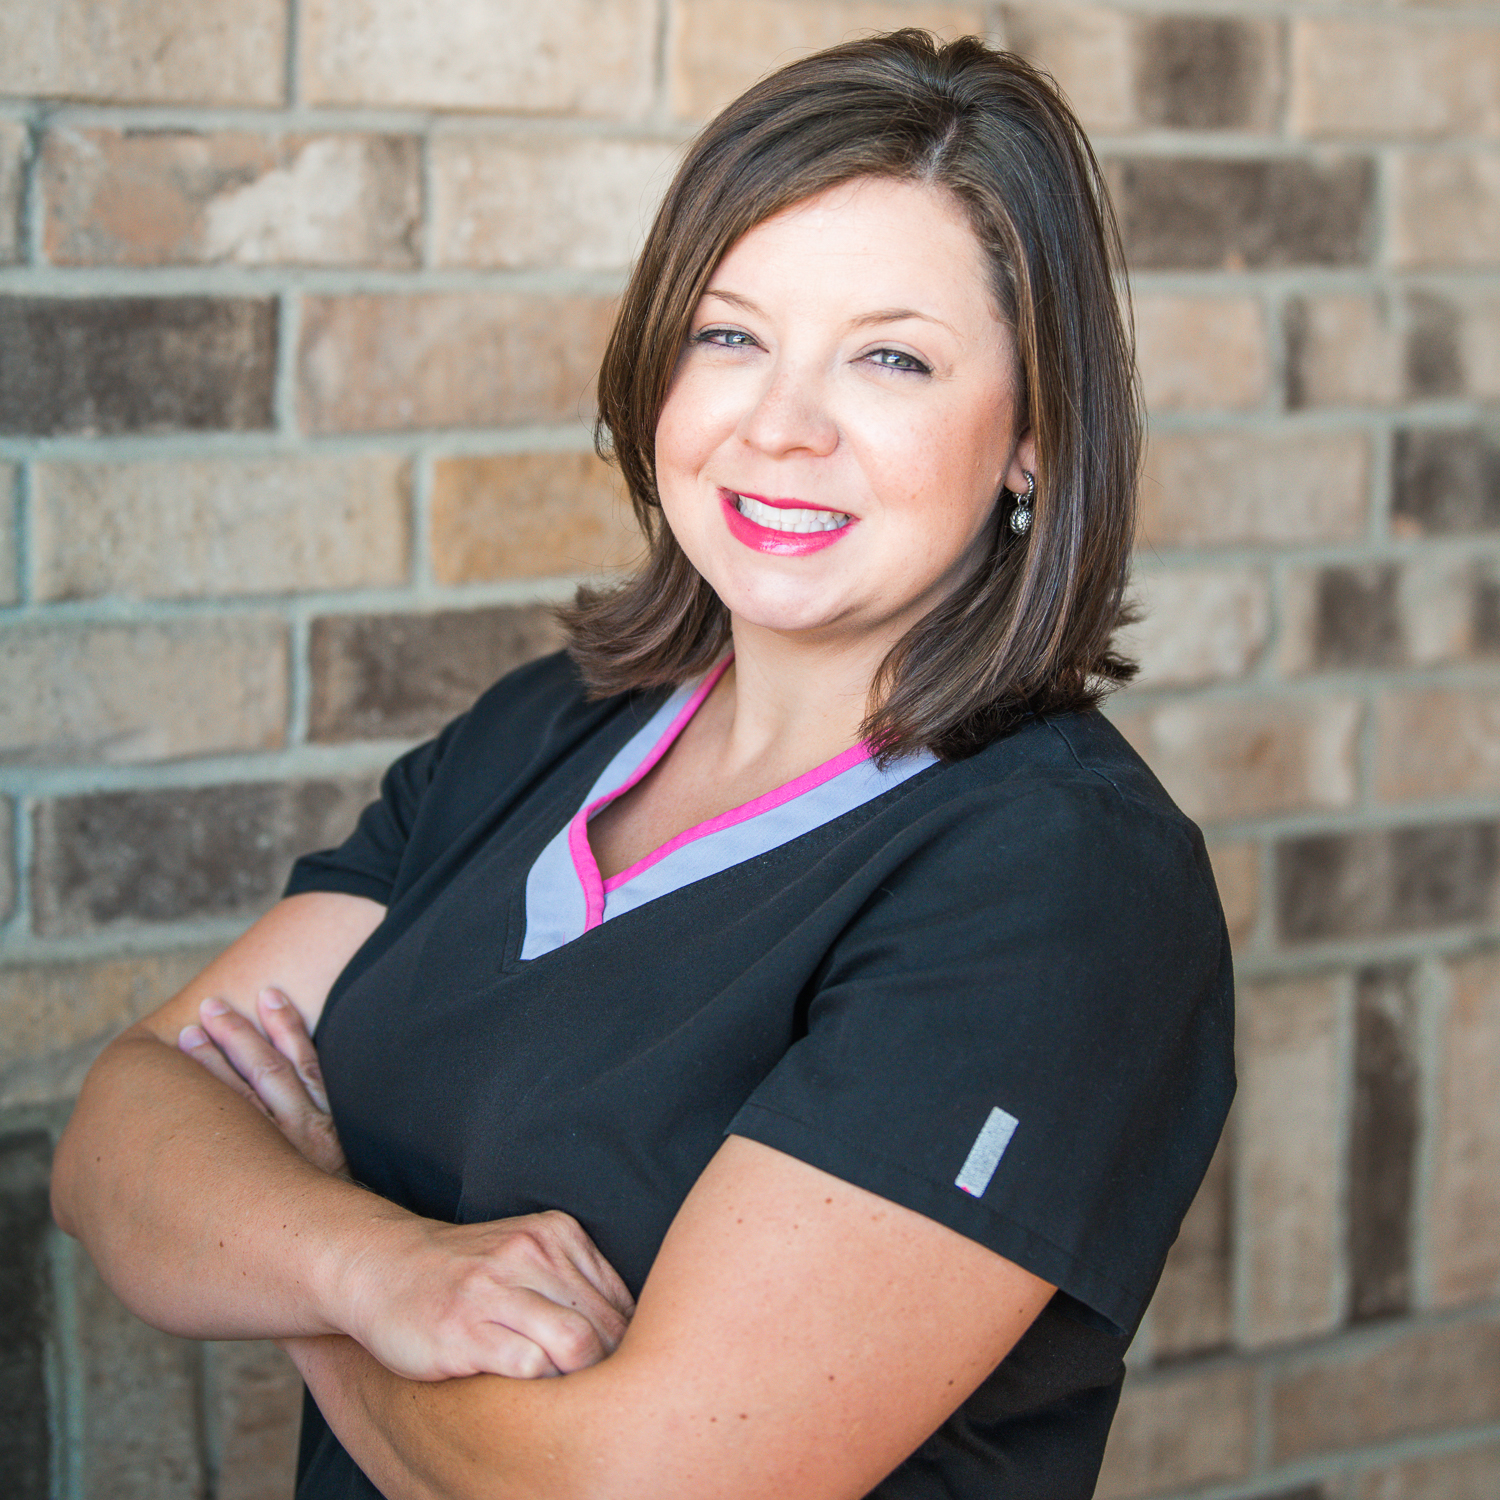 DEBORAH Registered Dental Hygienist   Deborah has been a practicing hygienist since 2005, when she joined our office. Deborah is our resident local girl. Deborah and her family have been patients of this practice all of their lives.  She graduated with a B.S. in Dental Hygiene from Midwestern State University in Wichita Falls, Texas. Deborah is married and has a beautiful son and daughter. In her spare time, Deborah loves making beautiful cookies and keeping her blog up-to-date.